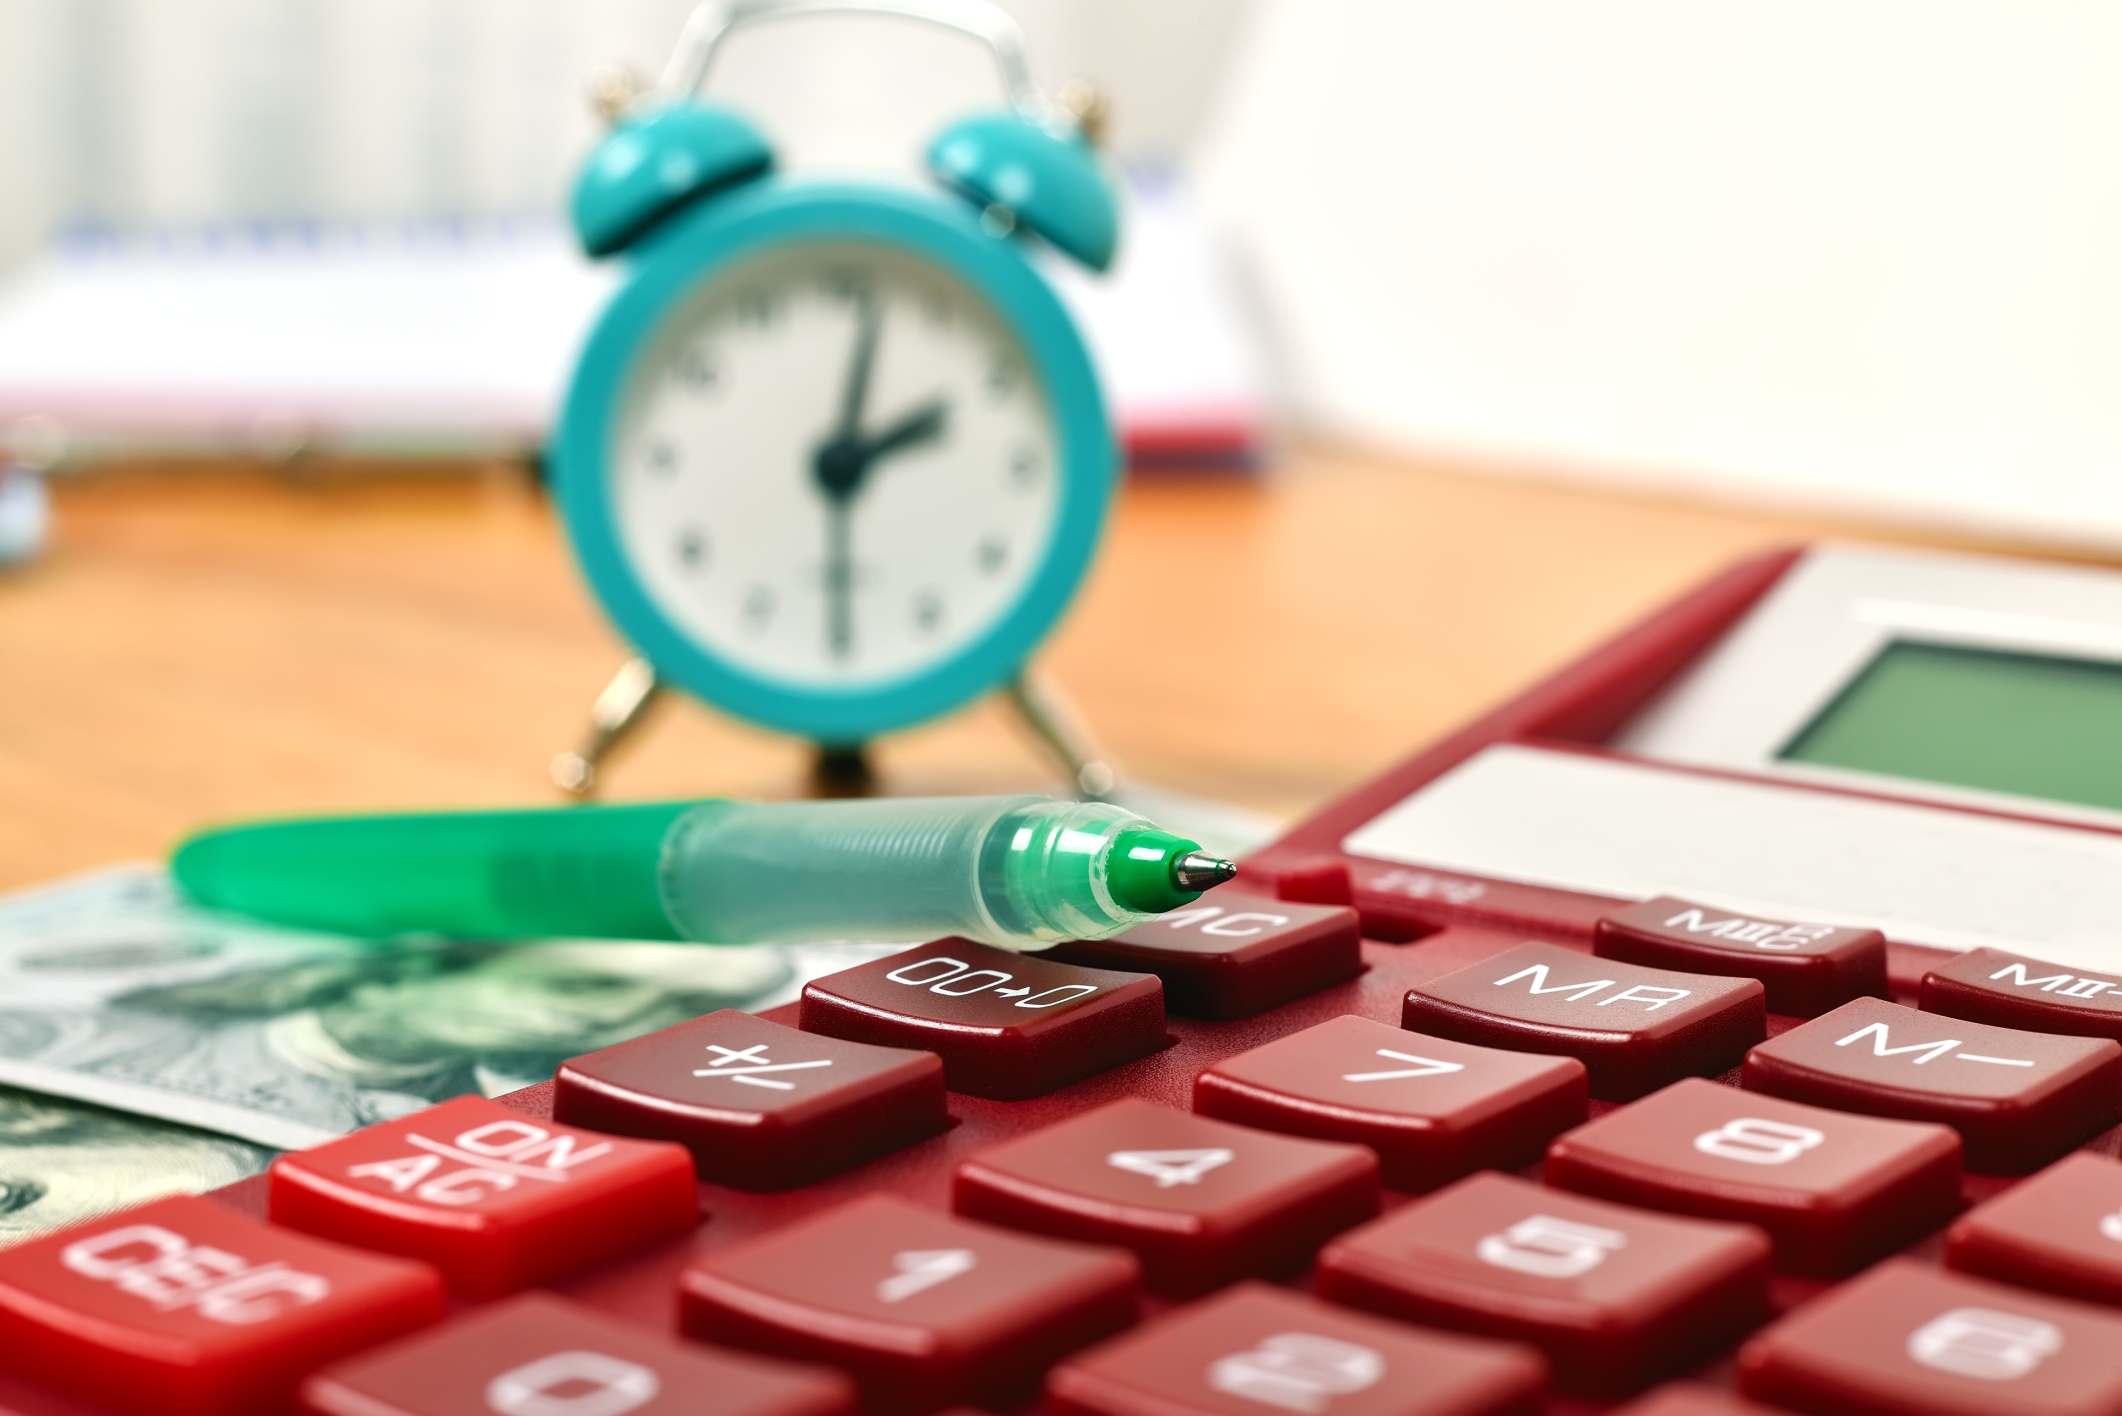 How to Calculate Hours Worked for Employees | Bizfluent